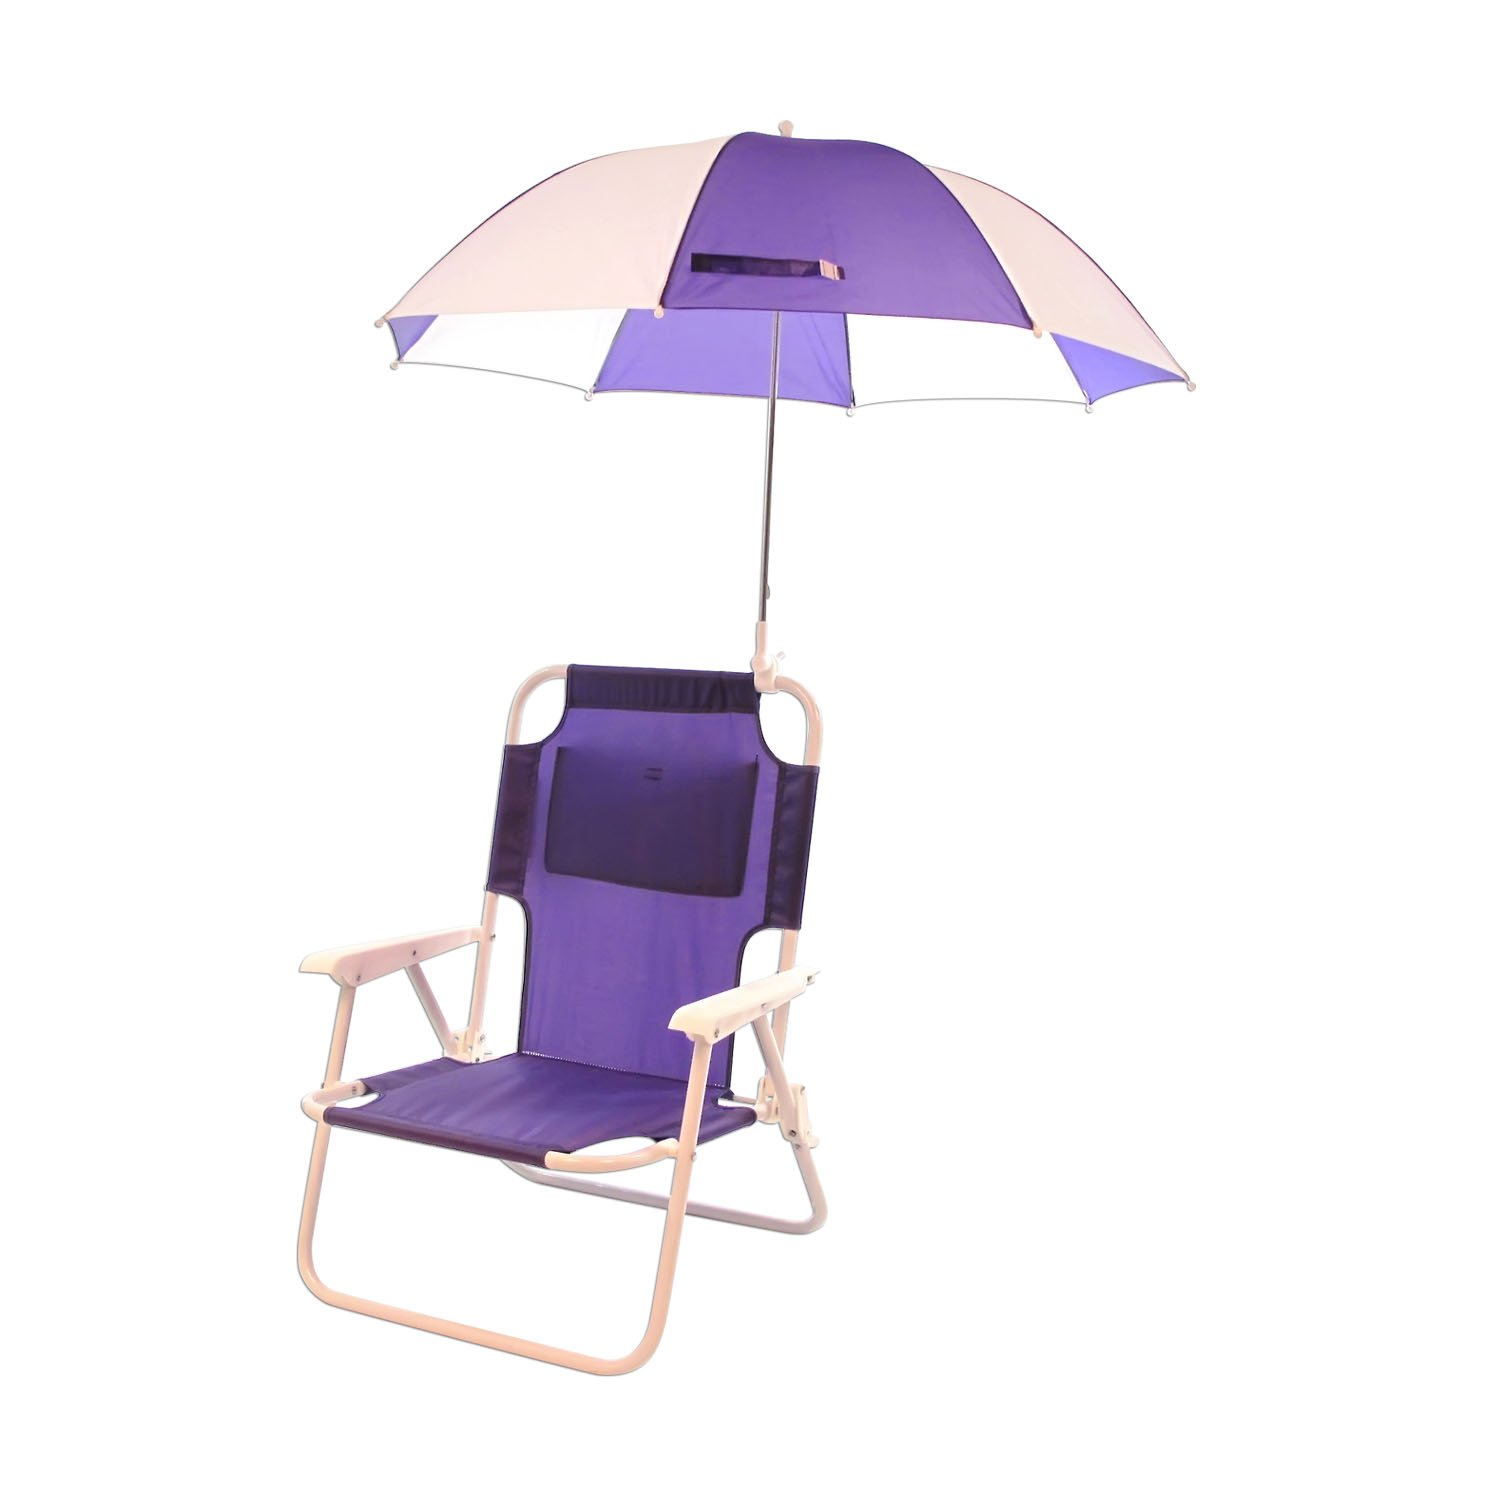 B002FQKAJ8 Redmon For Kids Outdoor Baby Kids Beach Chair with Umbrella, Purple 61Vx8myezmL._SL1500_